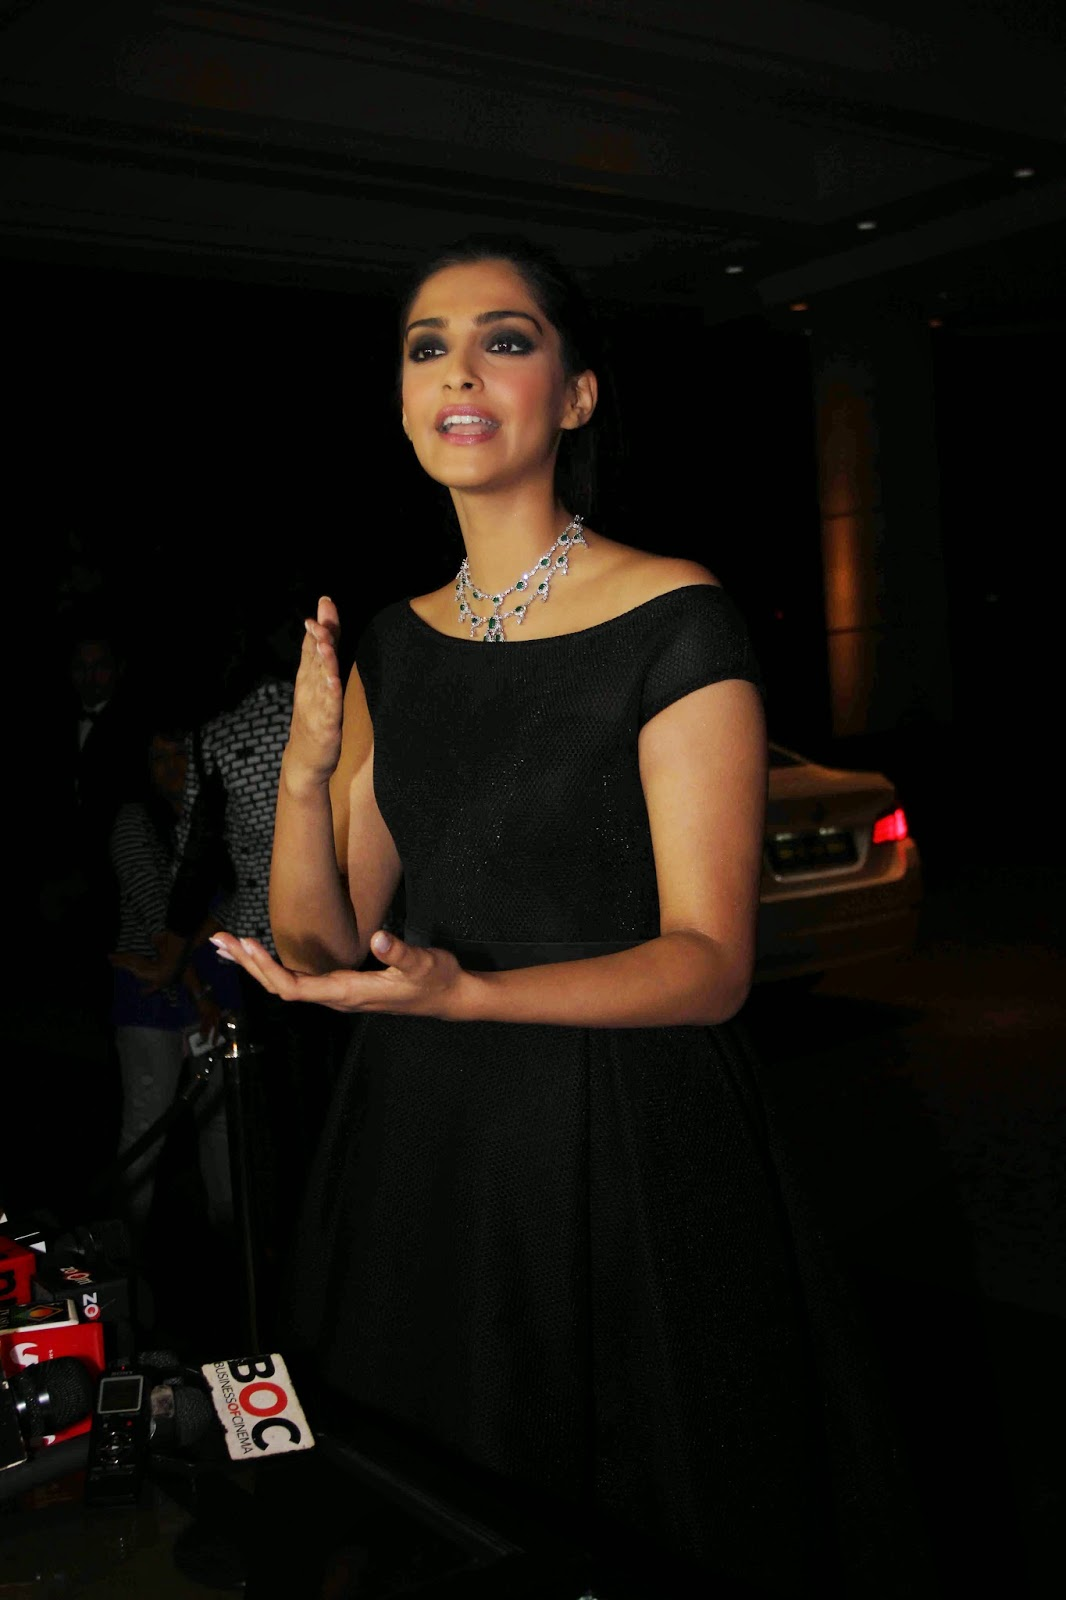 Glamours Hindi Actress Sonam Kapoor Hot Photos In Black Dress